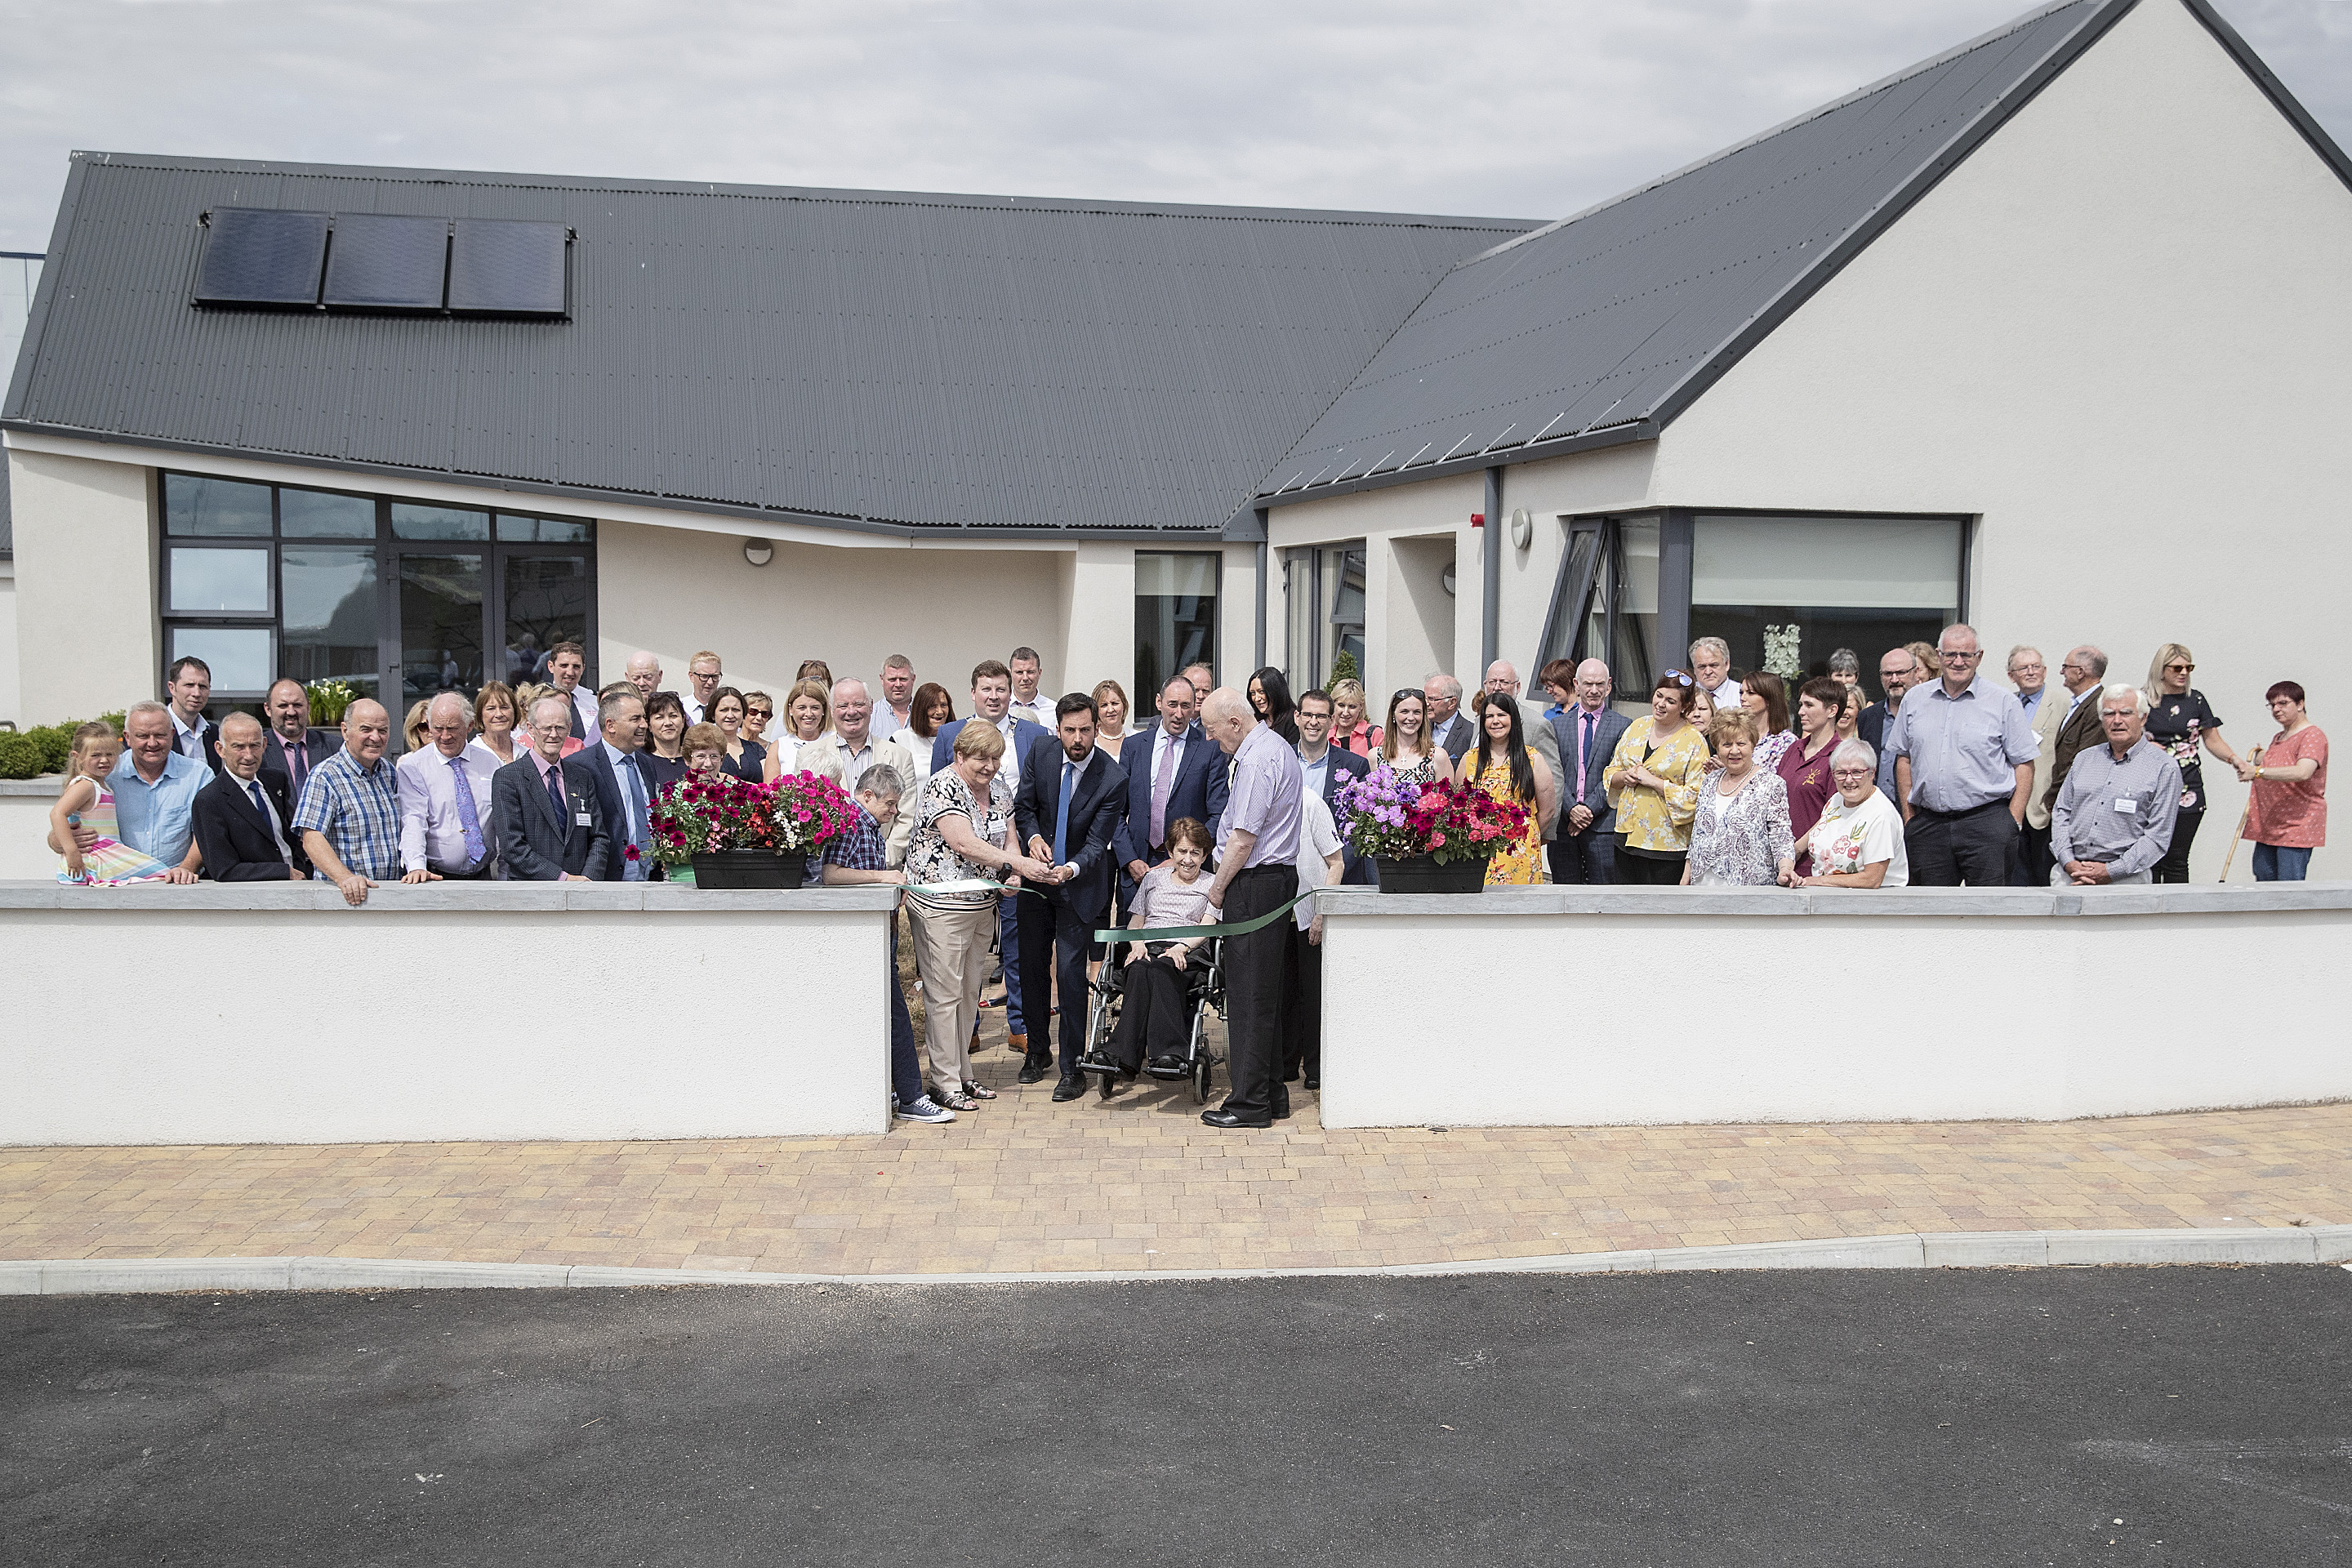 Eoghan Murphy TD Minister for Housing, Planing and Local Goverment with the help of Eileen Brophy Chairperson Tinteán cut the ribbon to officiially open Tinteán Willow. Photo: Thomas Nolan Photography.